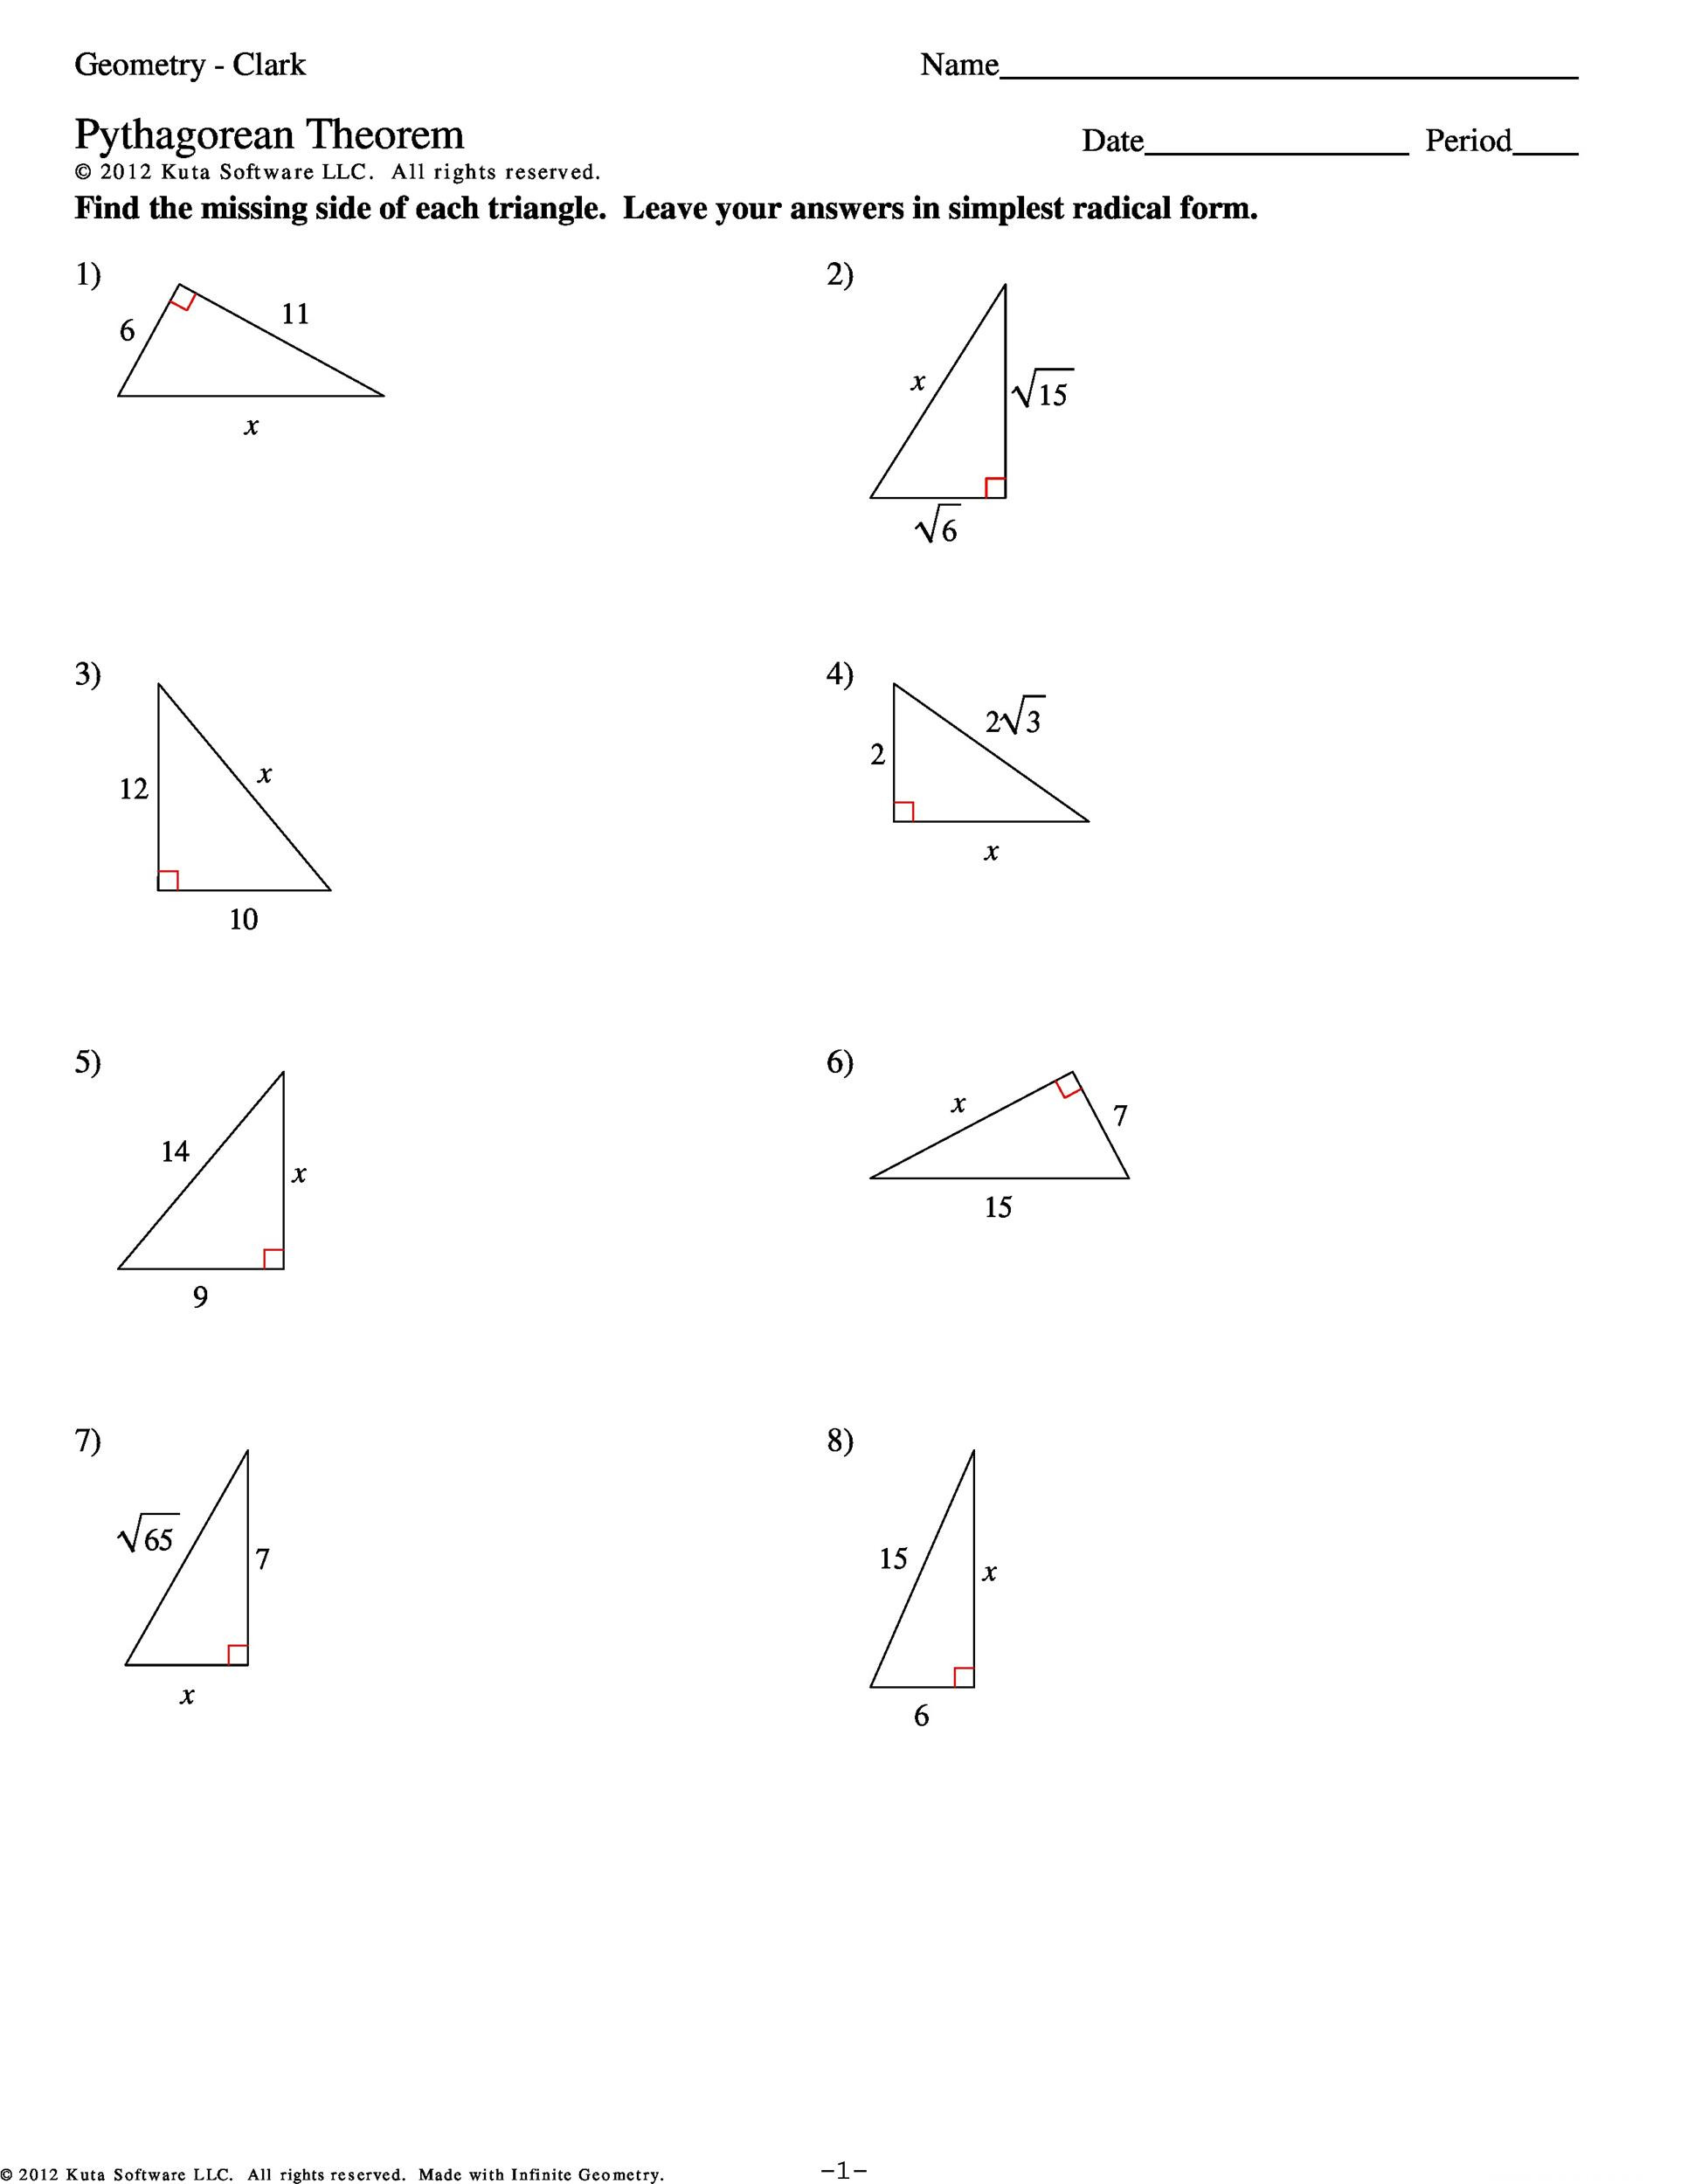 Pythagorean theorem Worksheet with Answers 48 Pythagorean theorem Worksheet with Answers [word Pdf]